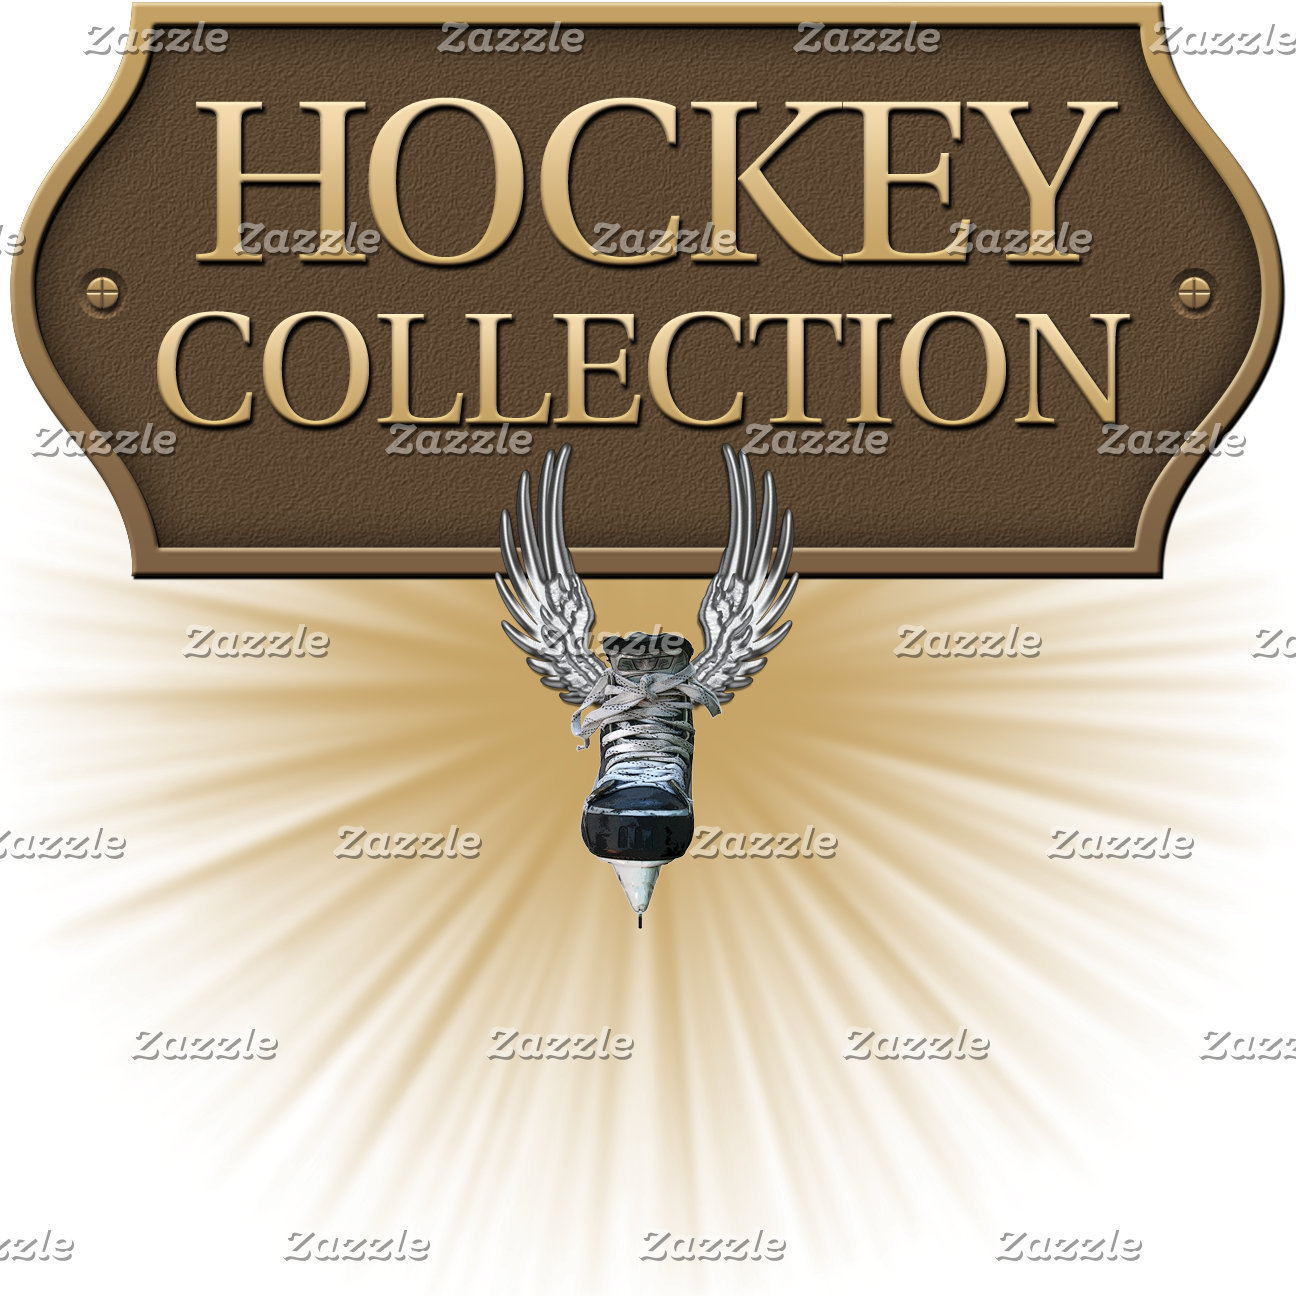 HOCKEY COLLECTION